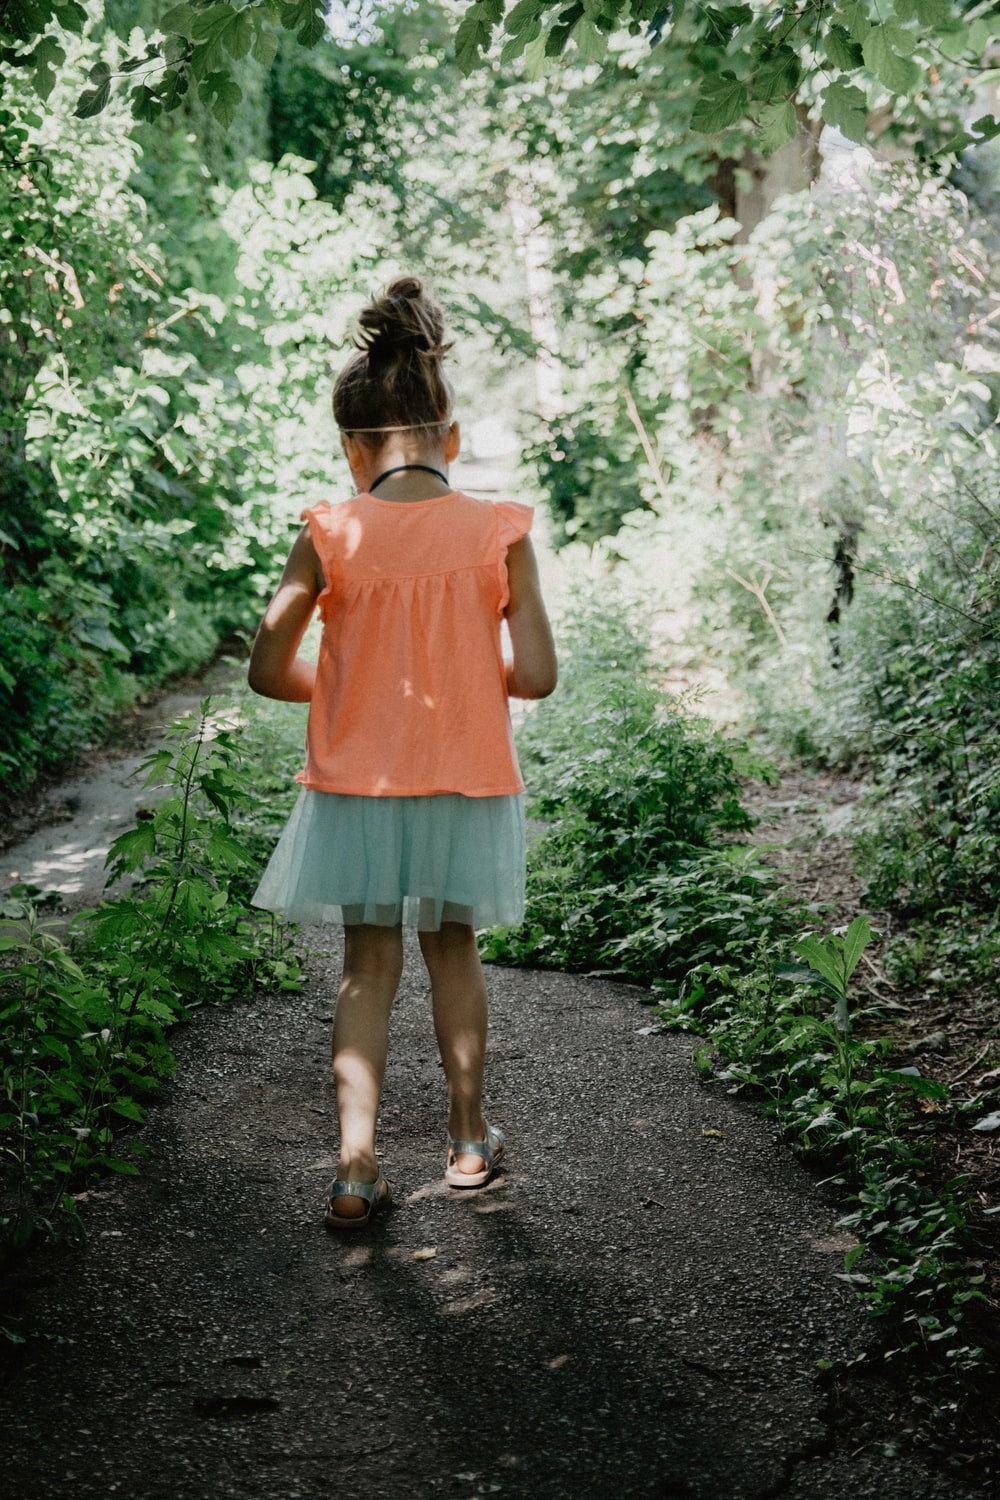 woman in pink tank top and blue denim shorts standing on pathway between green plants during